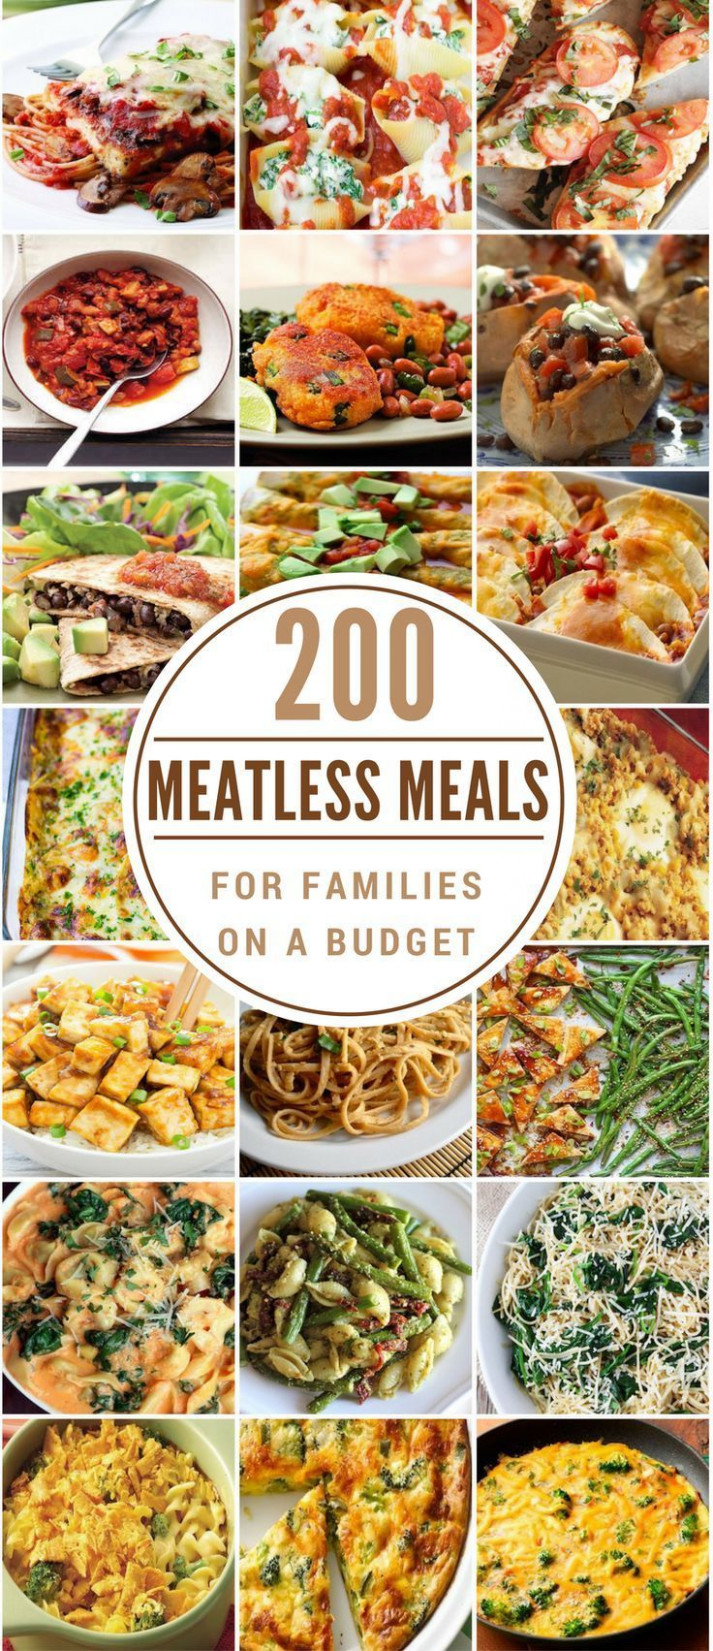 200 Meatless Meals for Families on a Budget | Vegetarian ..